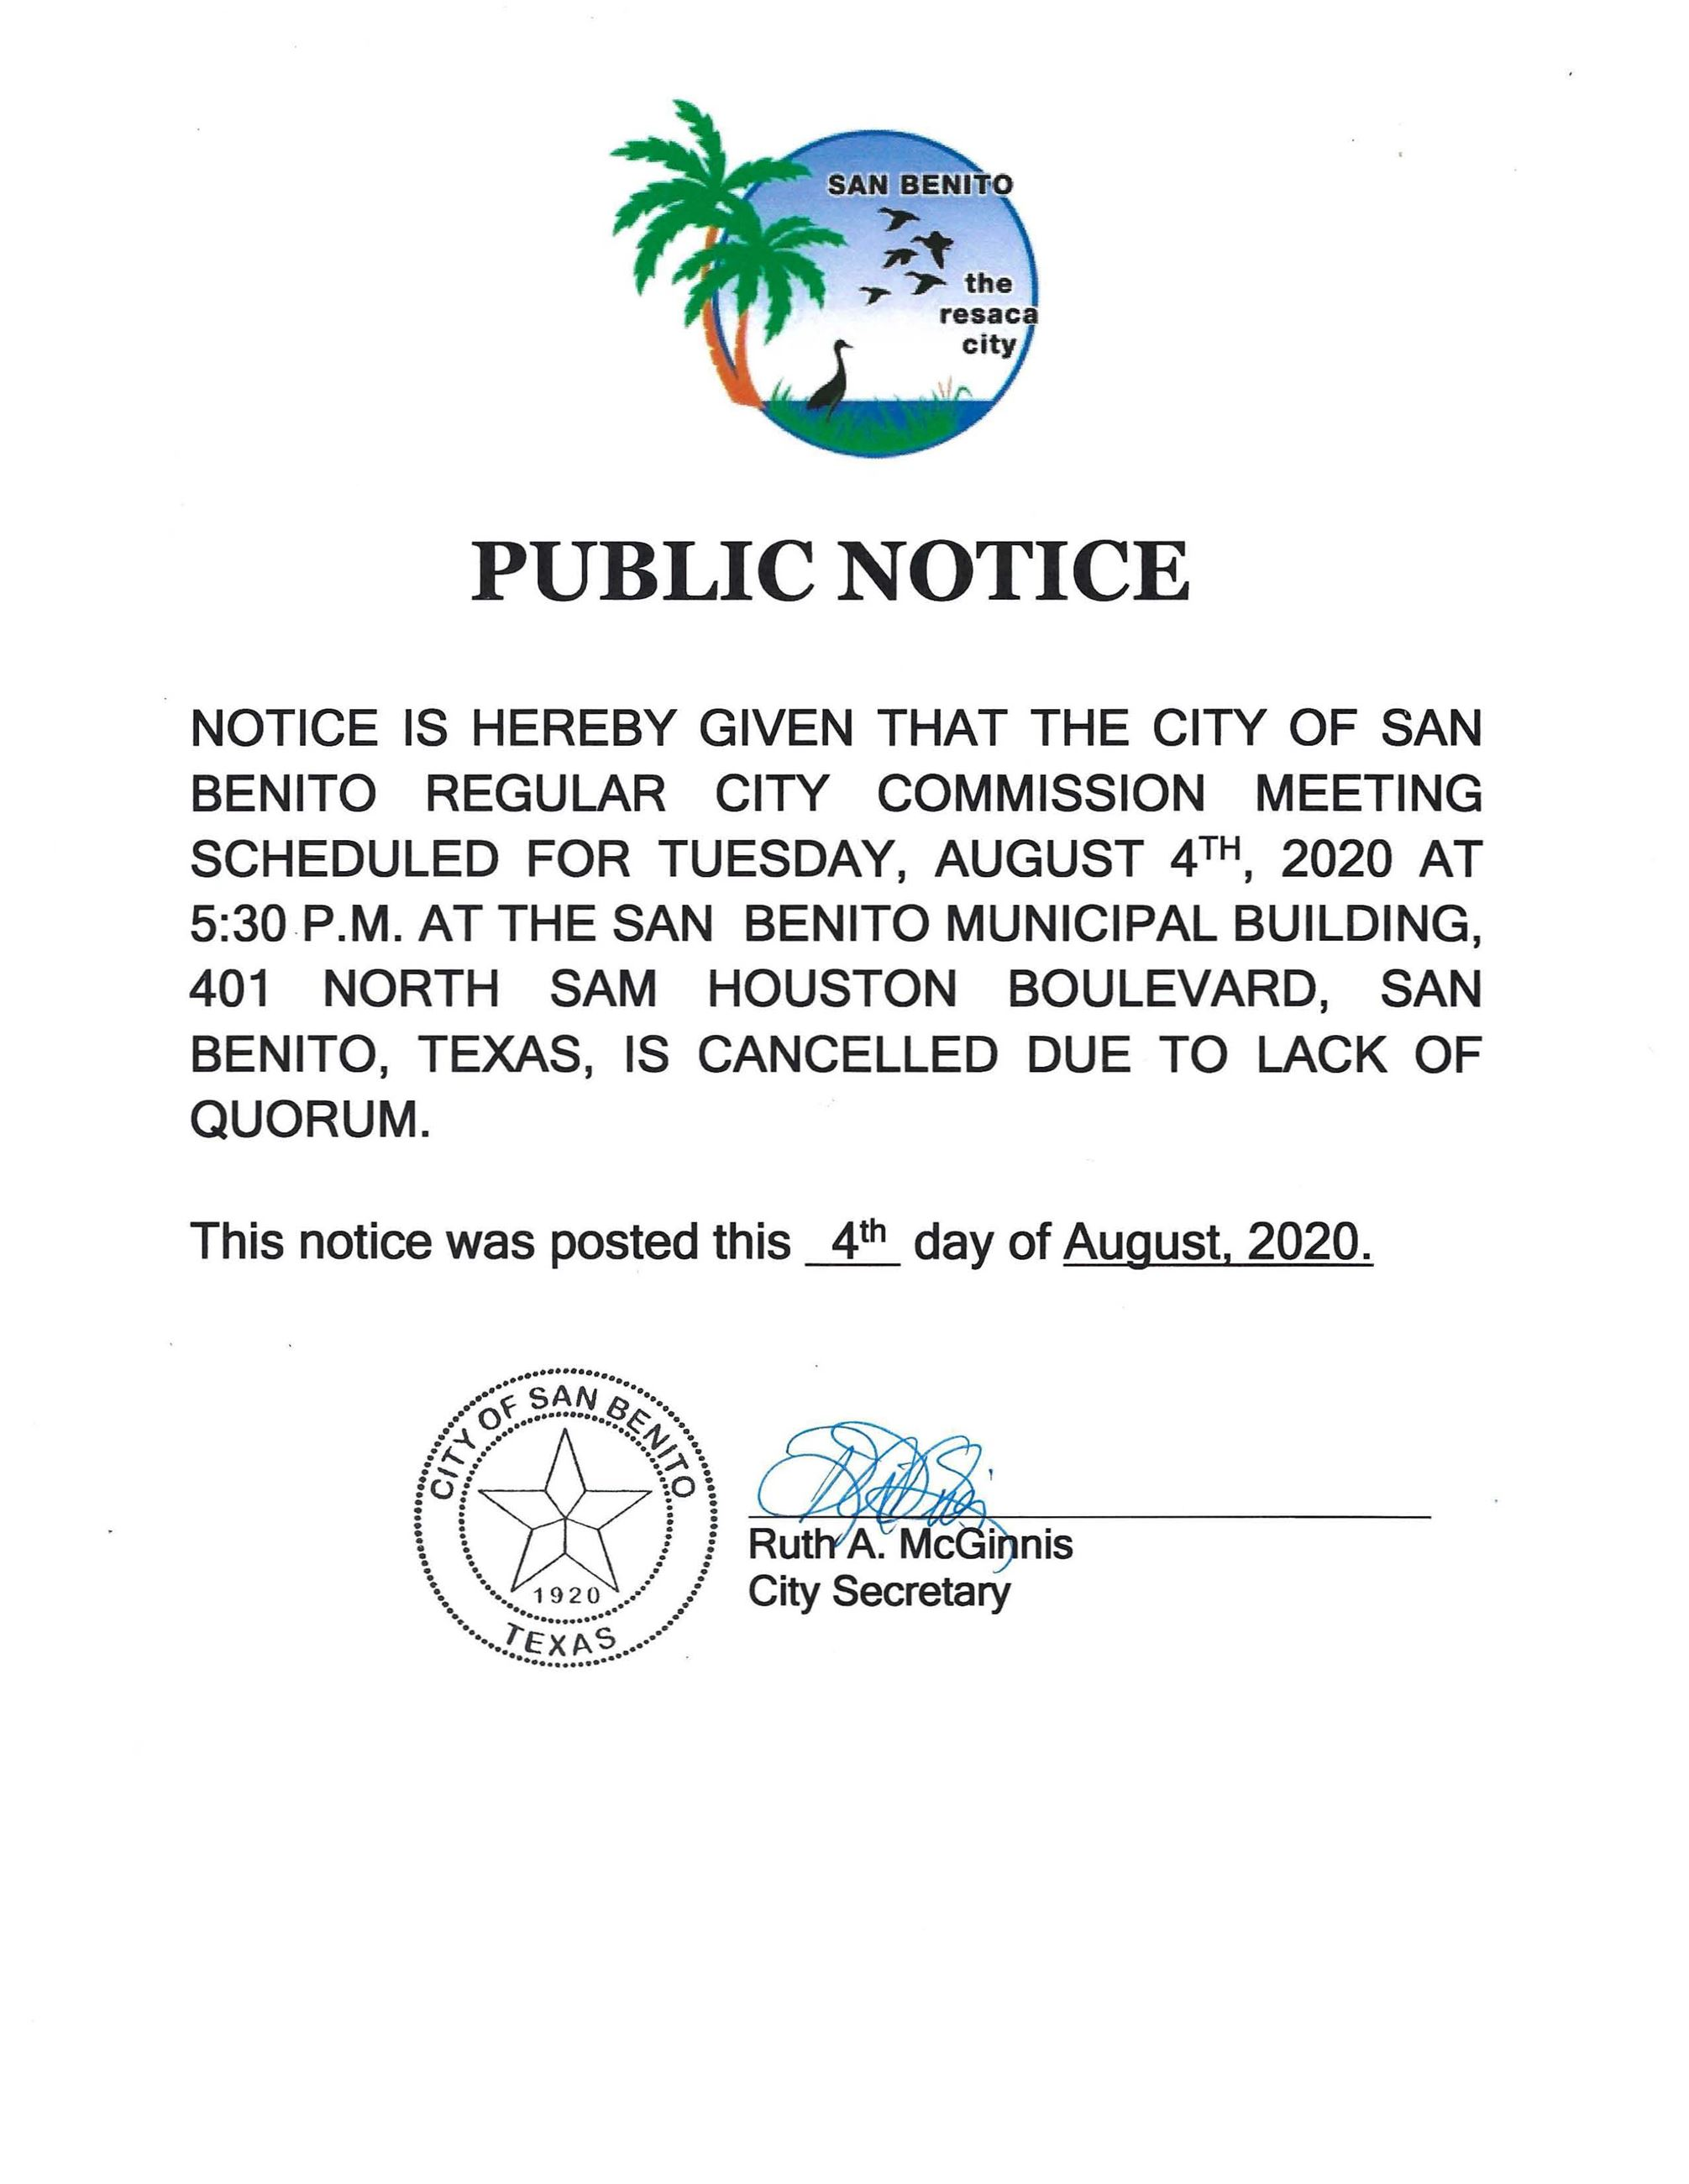 Public Notice: August 4, 2020 City of San Benito Regular City Commission Meeting Cancelled